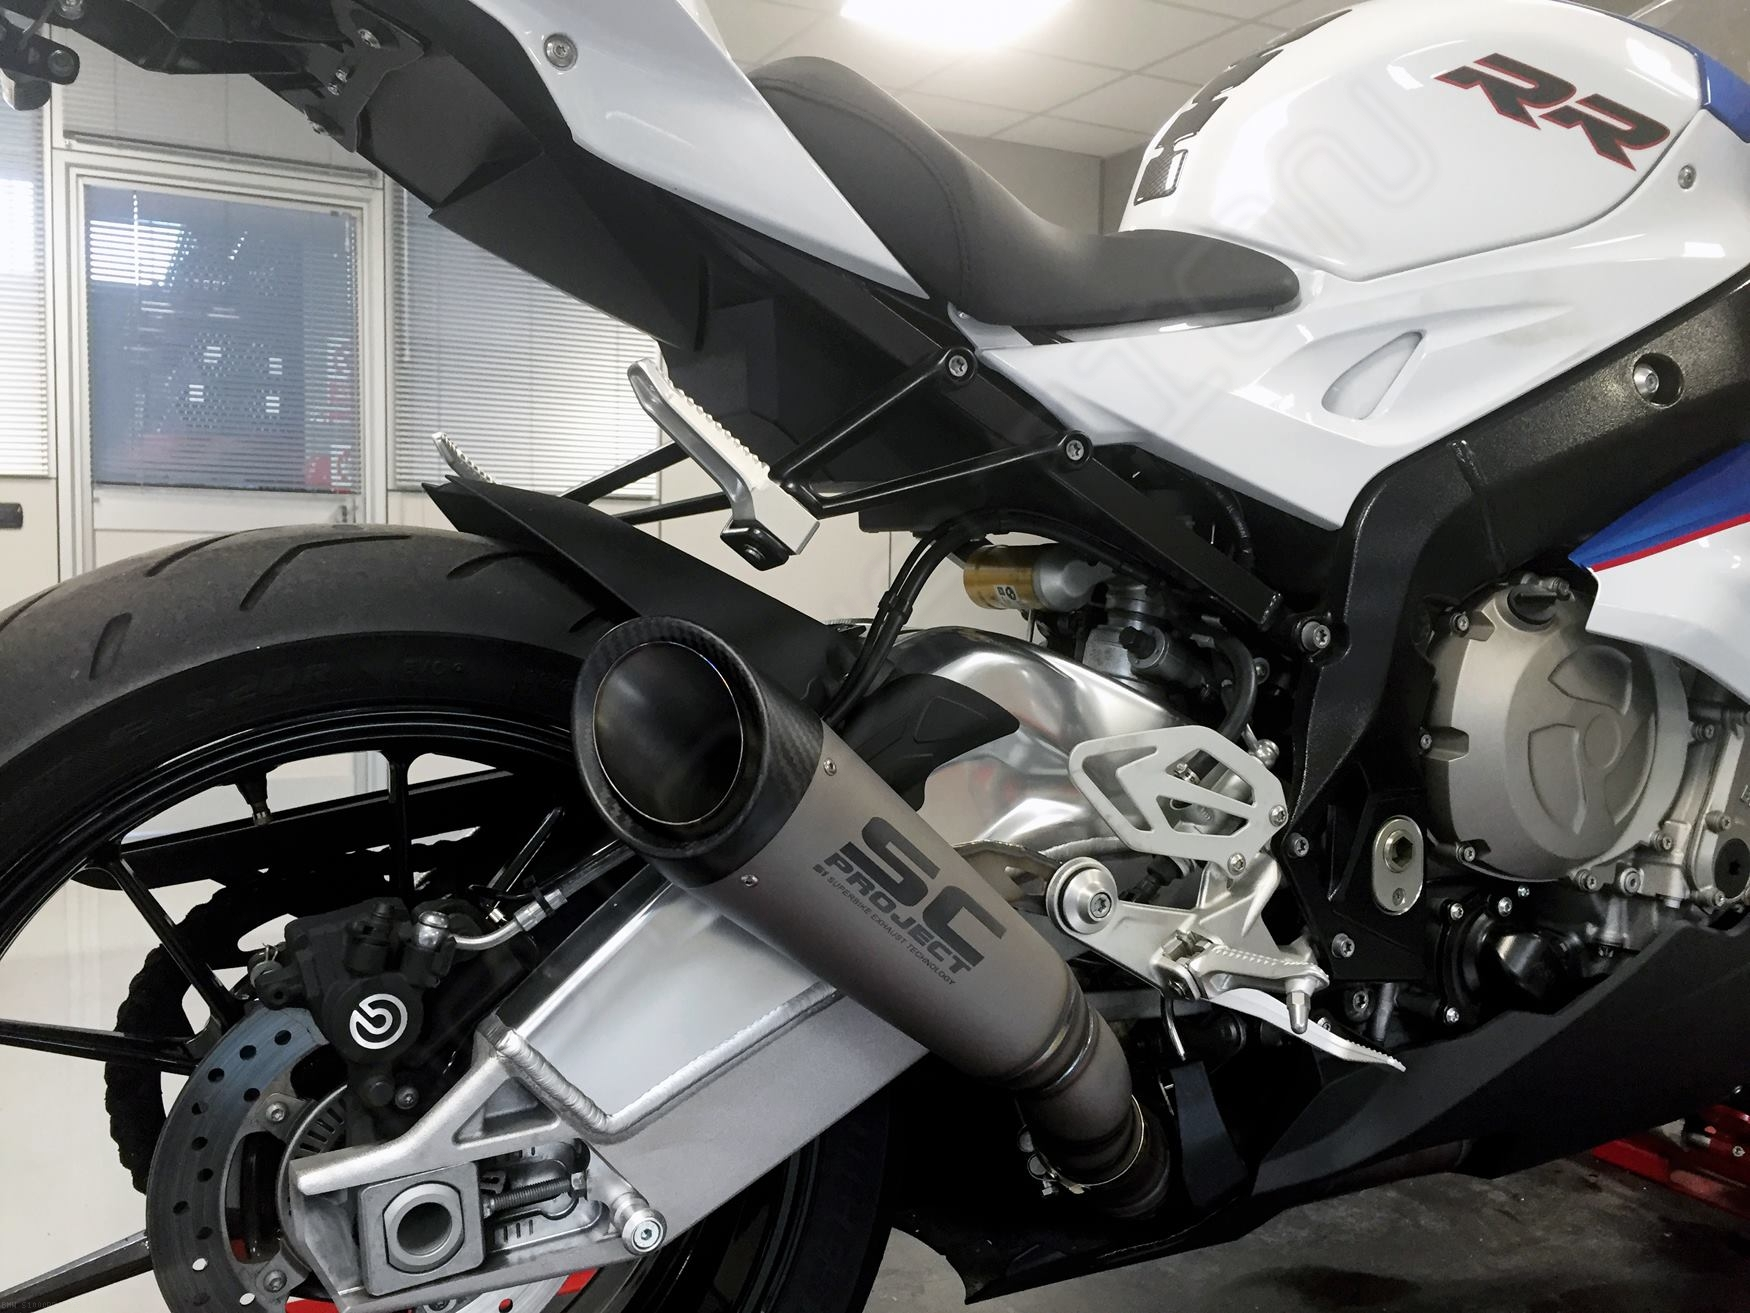 S1 Exhaust By Sc Project Bmw S1000rr 2015 B20 T41t